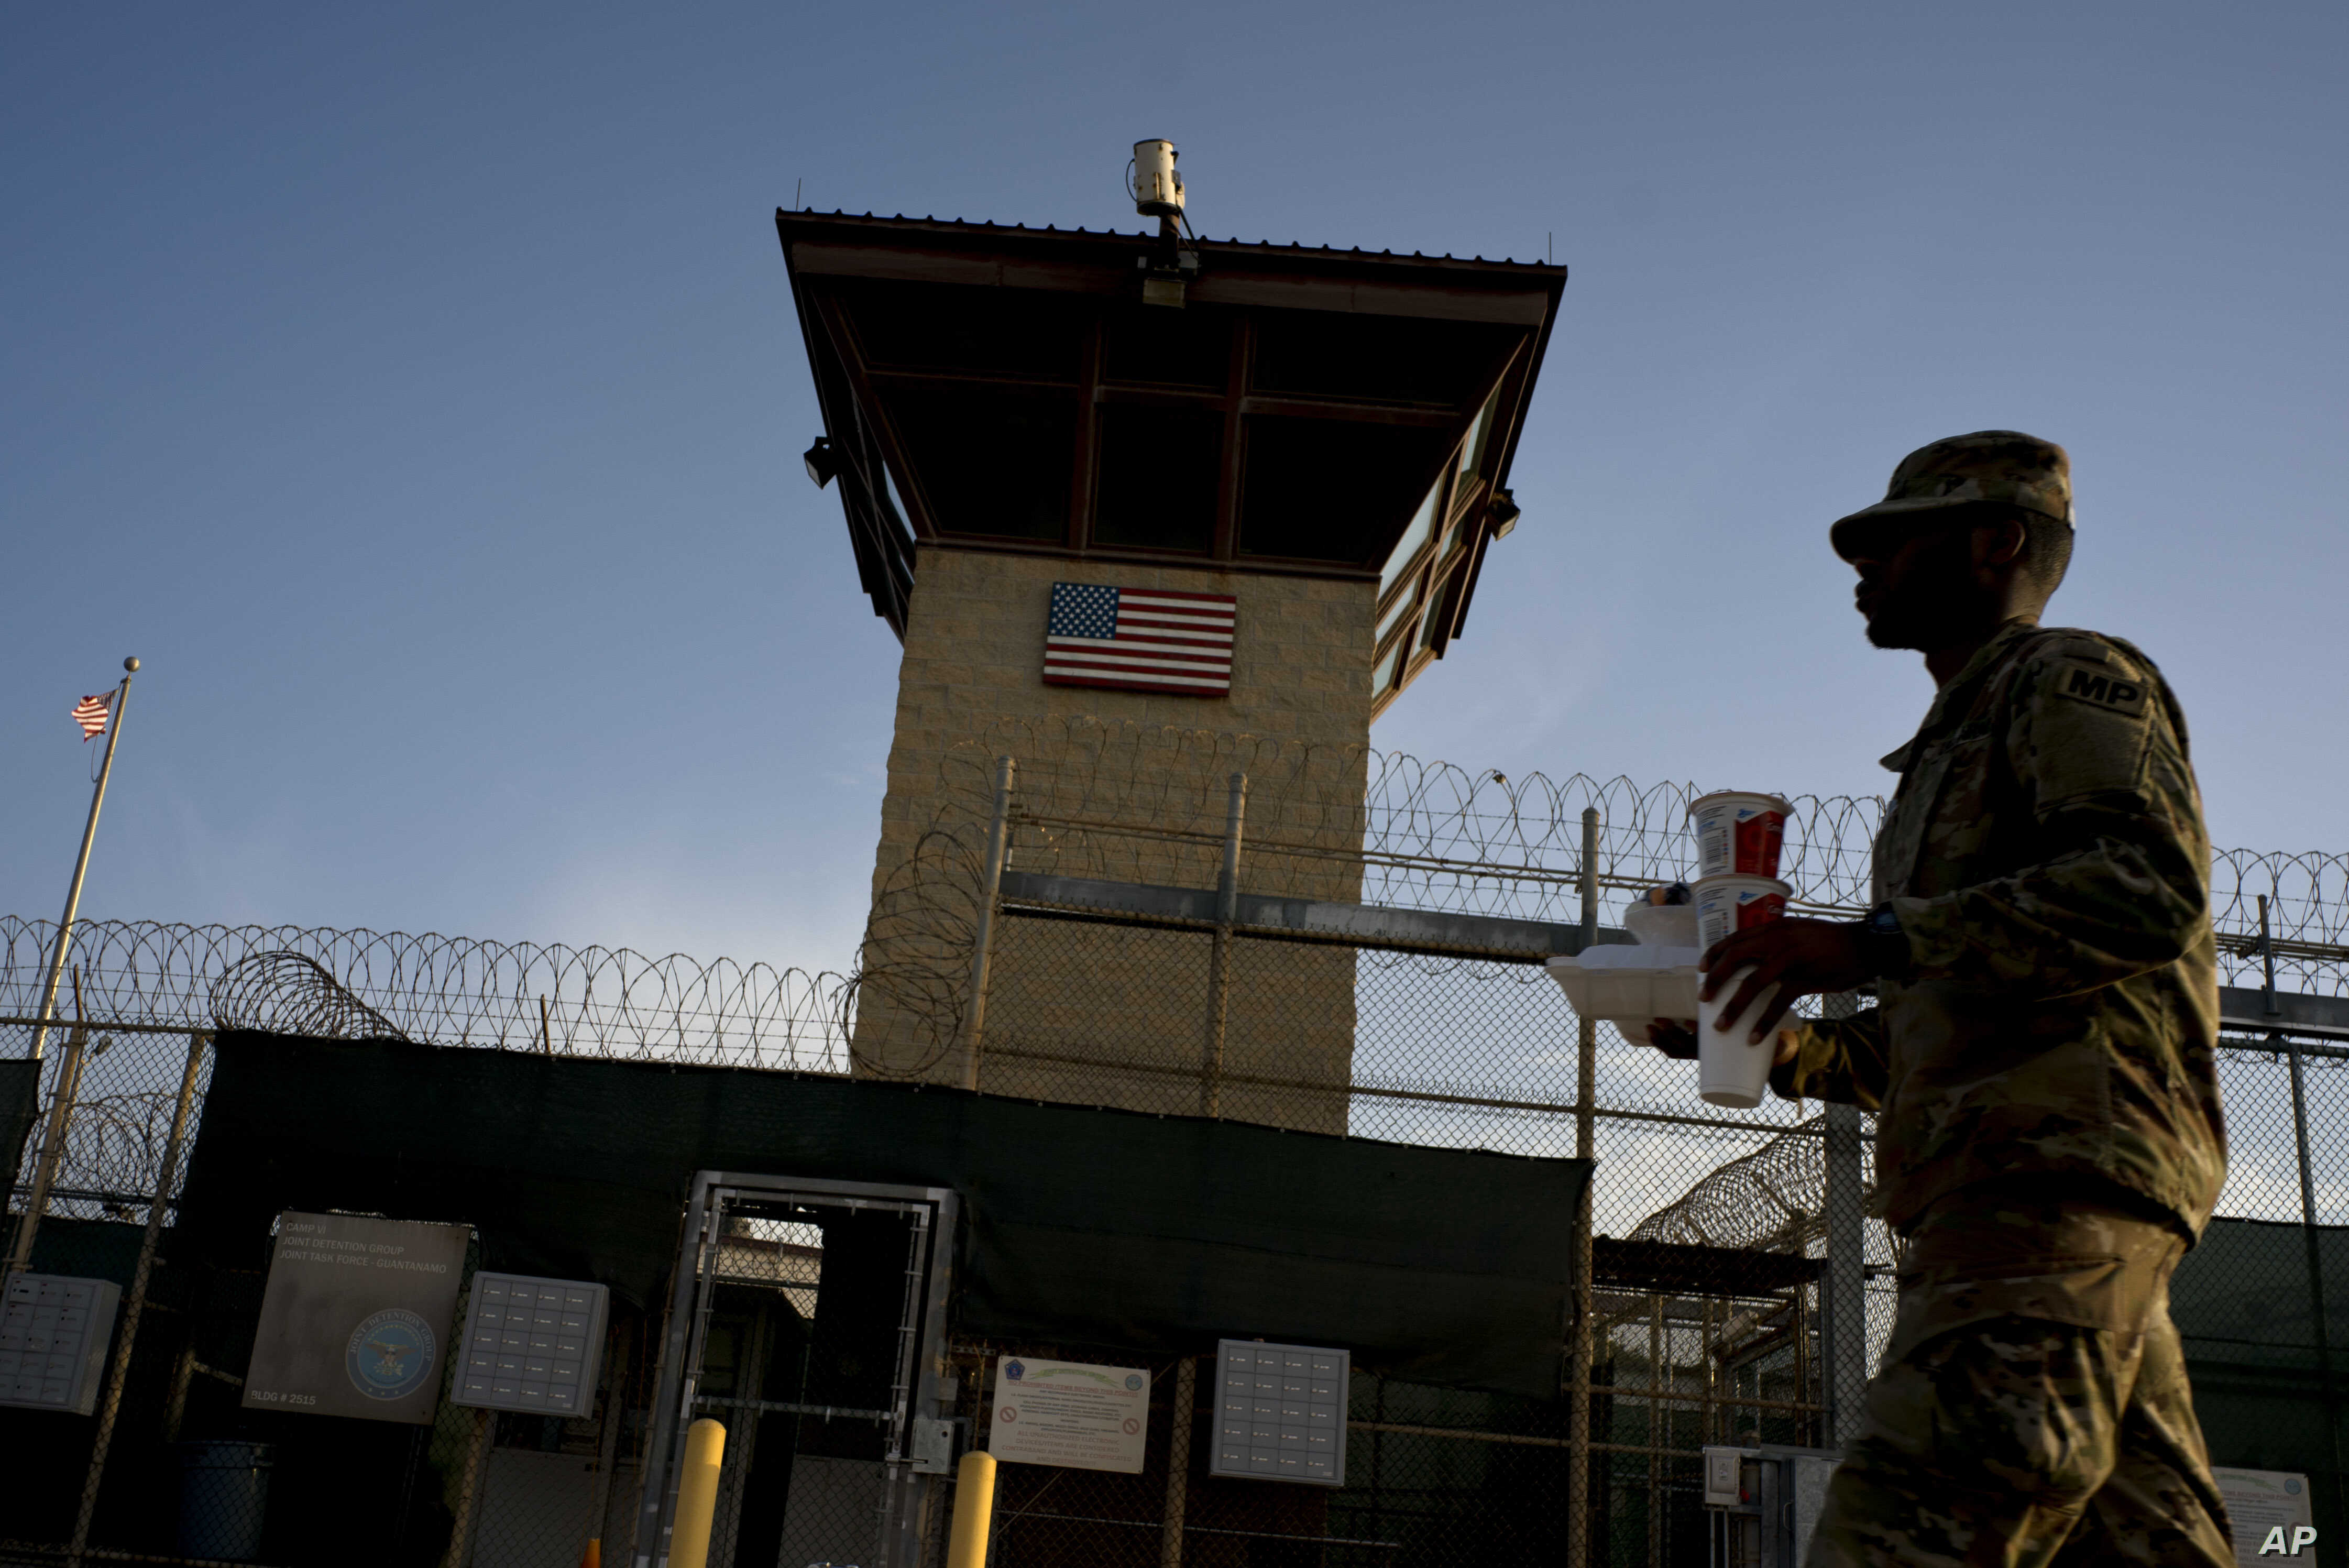 In this June 5, 2018 photo, reviewed by U.S. military officials, a task force member walks past the Camp 6 detention facility at the Guantanamo Bay U.S. Naval Base, Cuba.